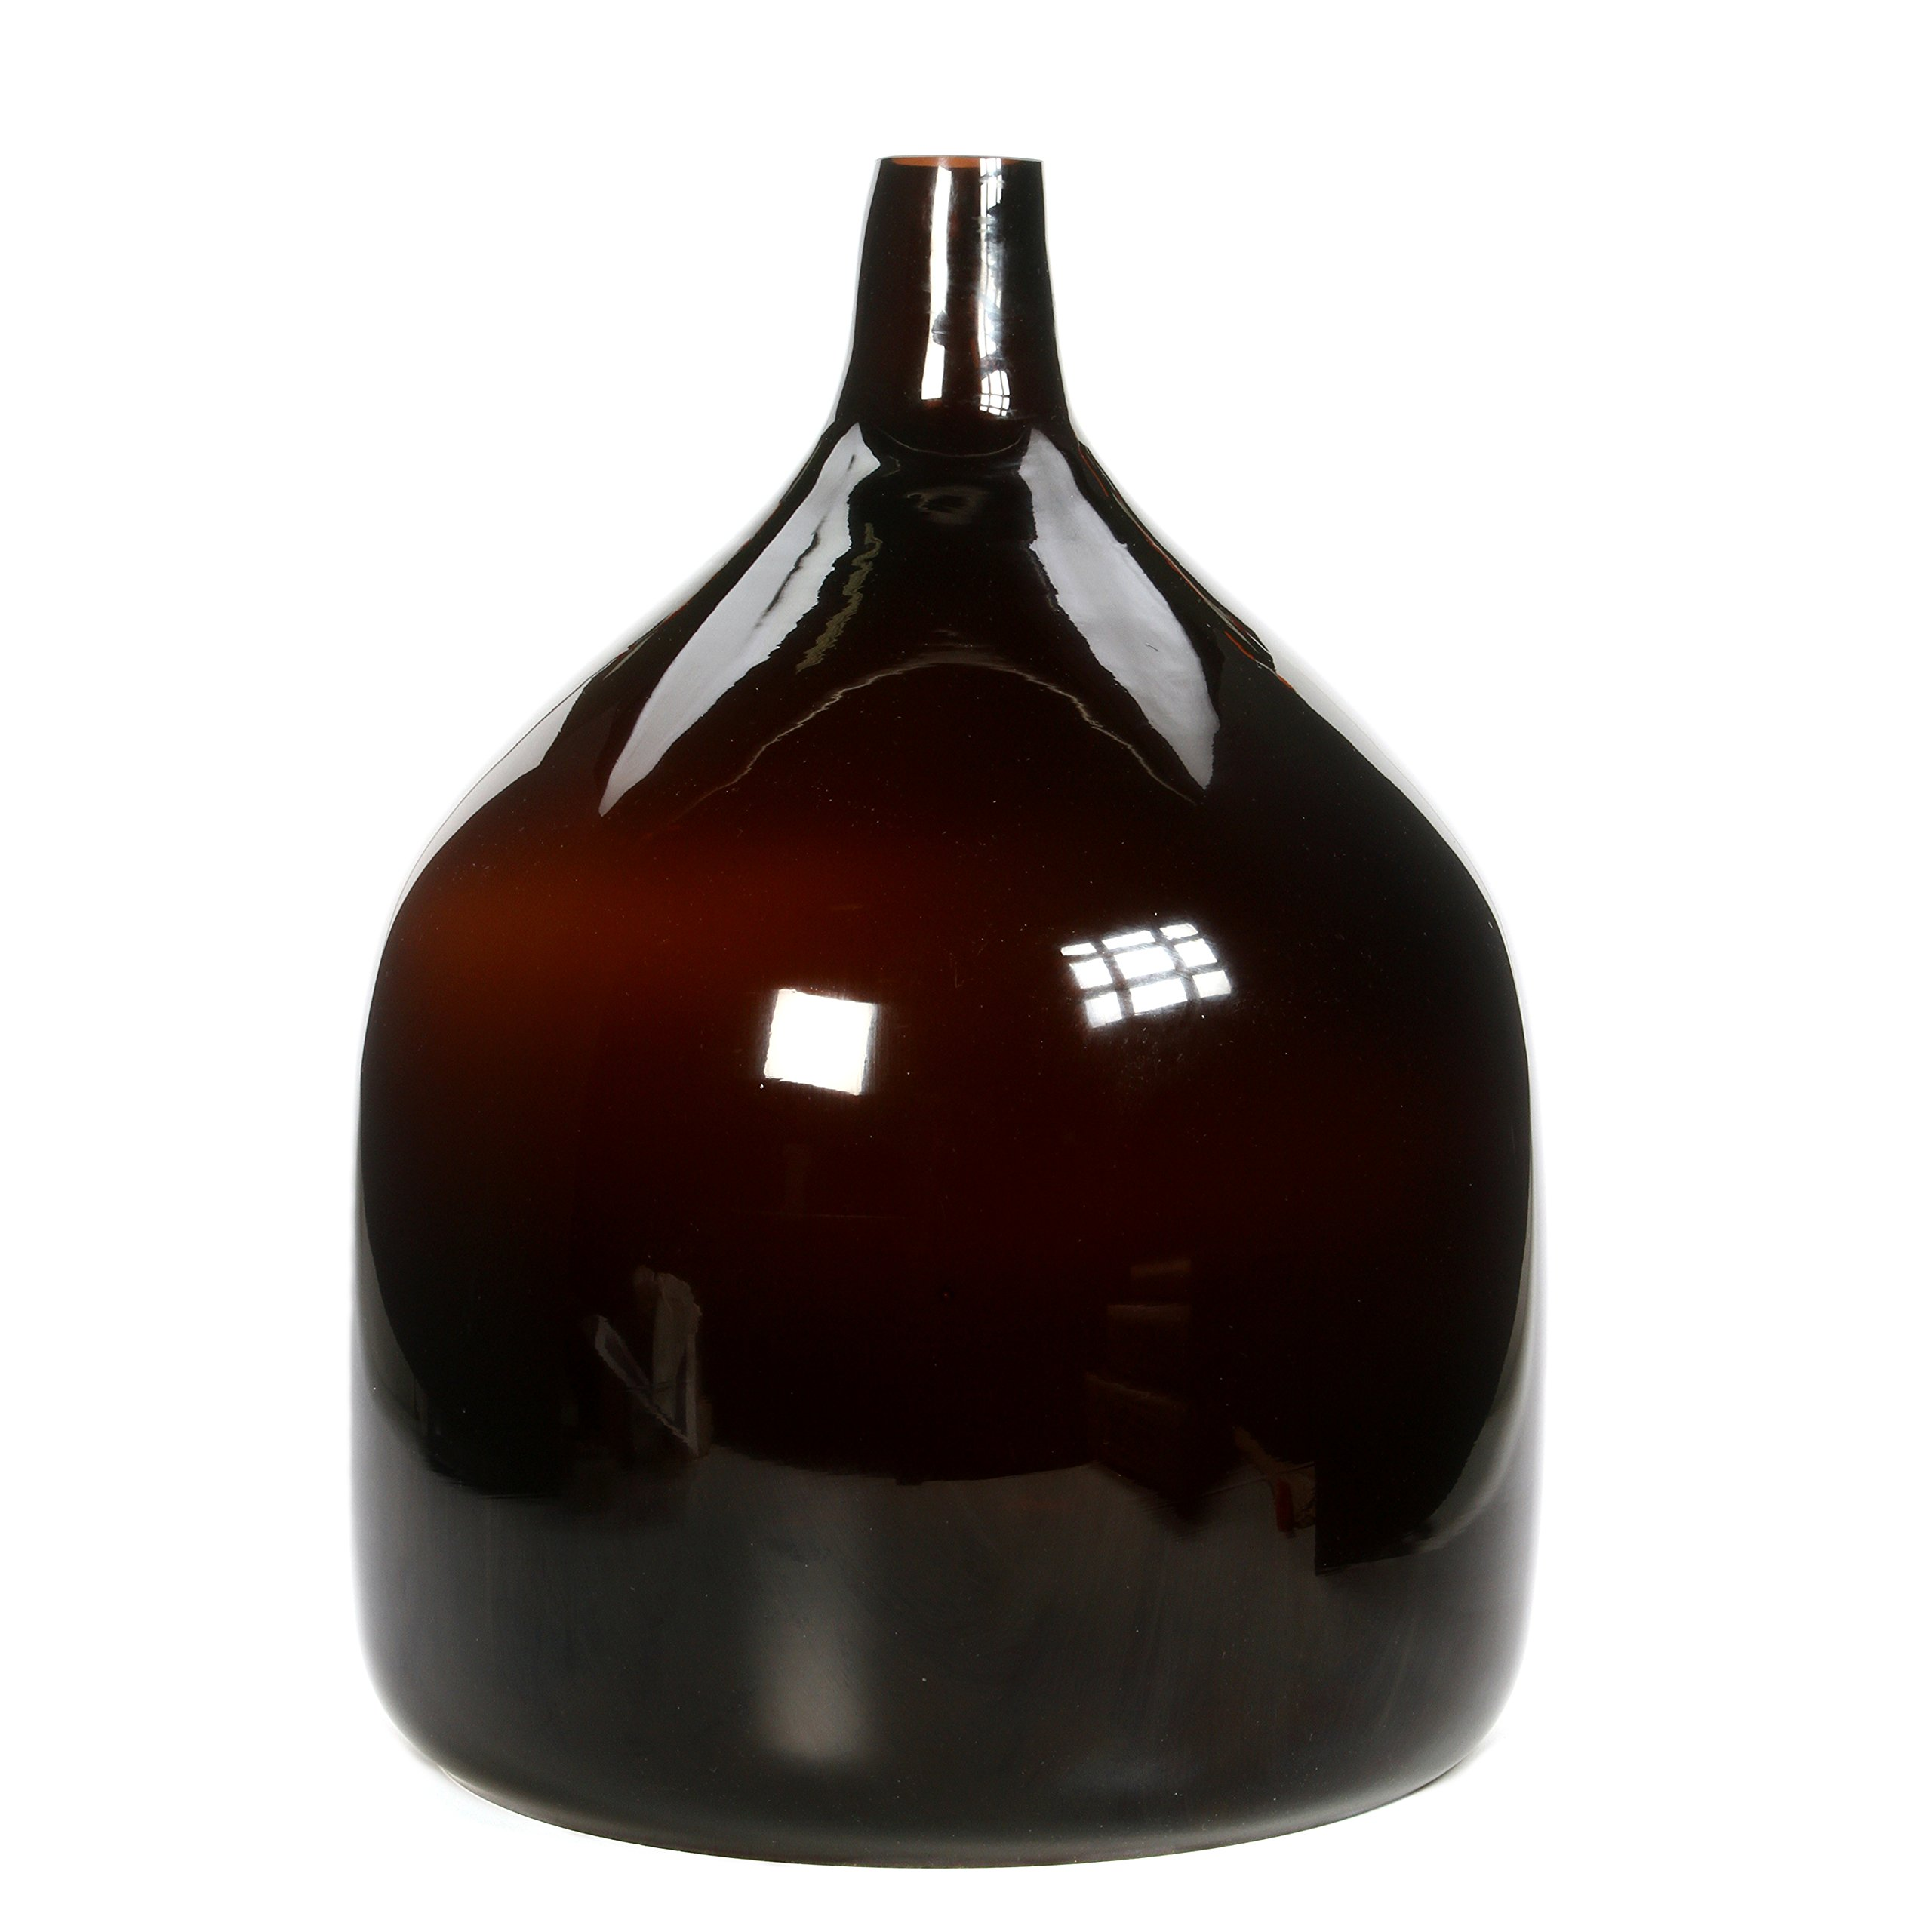 Hosley Lung Light Shade (Only Shade) 18'' Diameter, Brown. Ideal Gift for Wedding, Party, Home Decor, Office, Spa 18 K